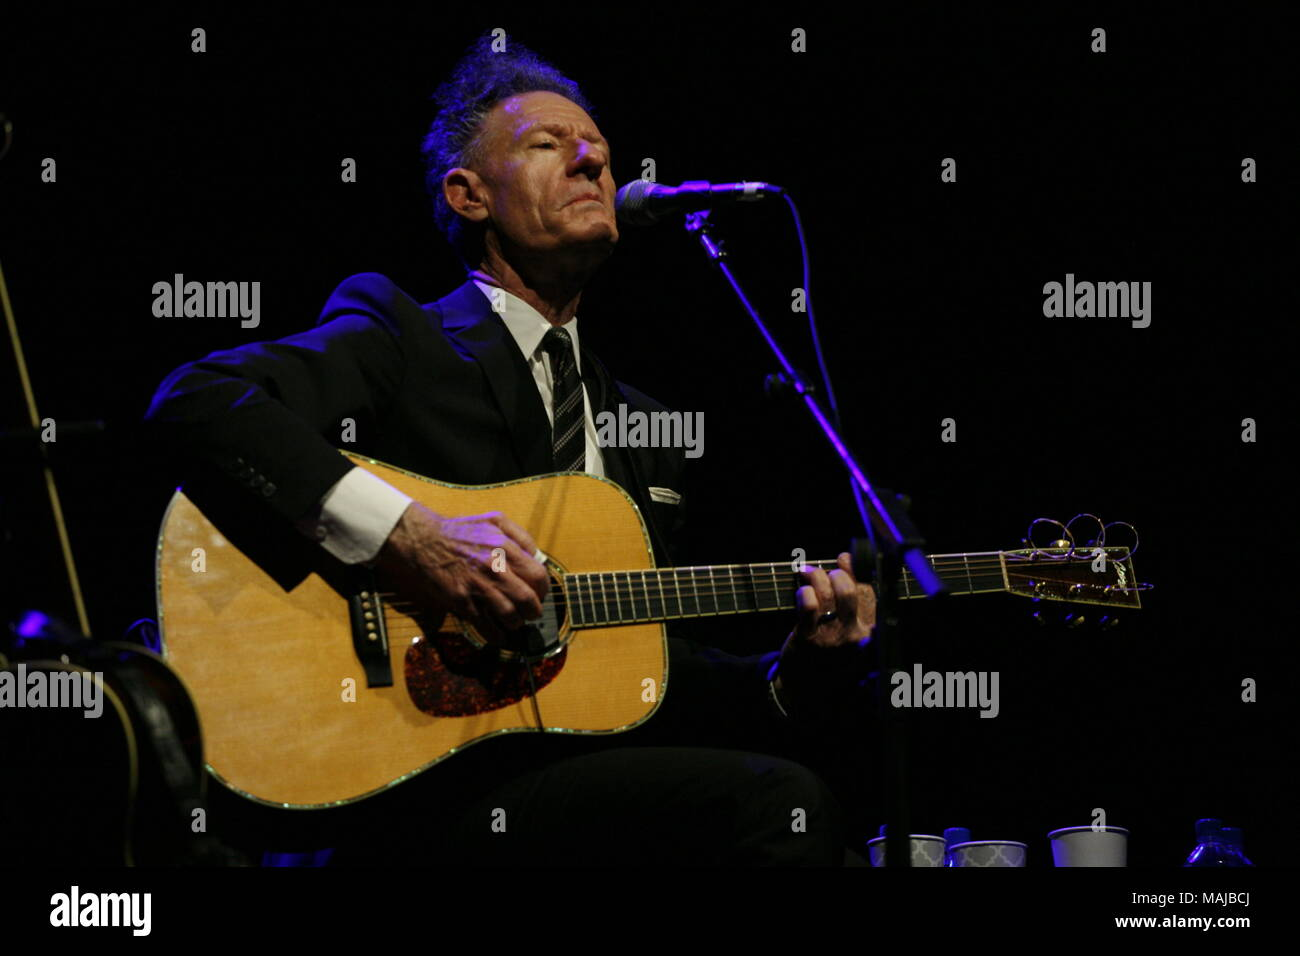 Folk Singers Lyle Lovett and Shawn Colvin performing live at the Parx Casino in Bensalem  Featuring: Lyle Lovett Where: Bensalem, Pennsylvania, United States When: 01 Mar 2018 Credit: W.Wade/WENN - Stock Image